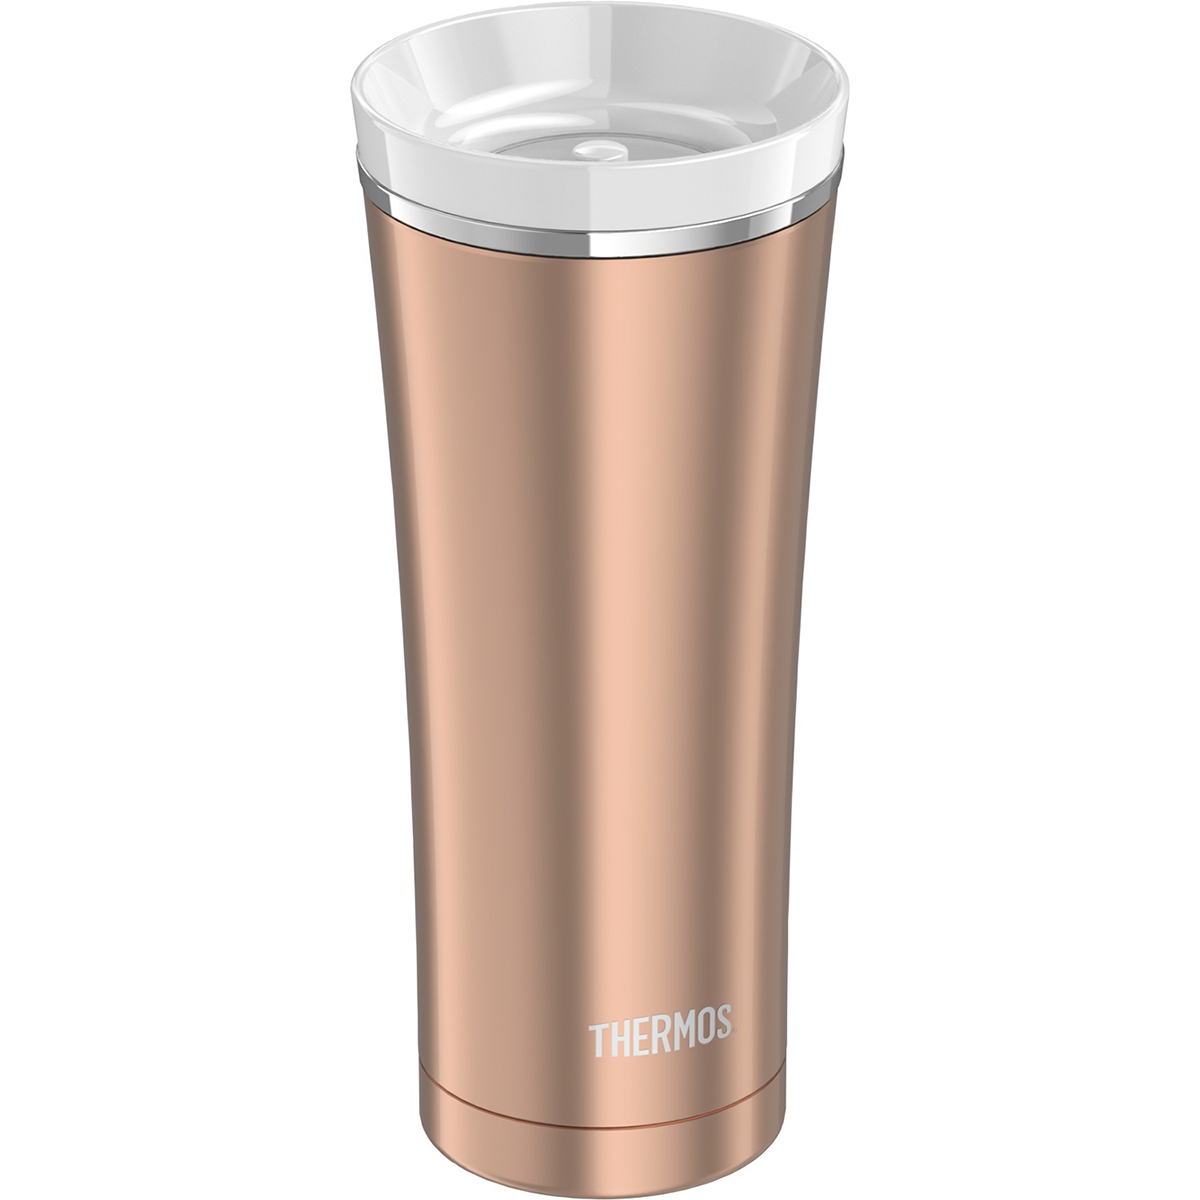 Thermos Ns1056rg4 16 ounce Sipp Stainless Steel Travel Tumbler  rose Gold